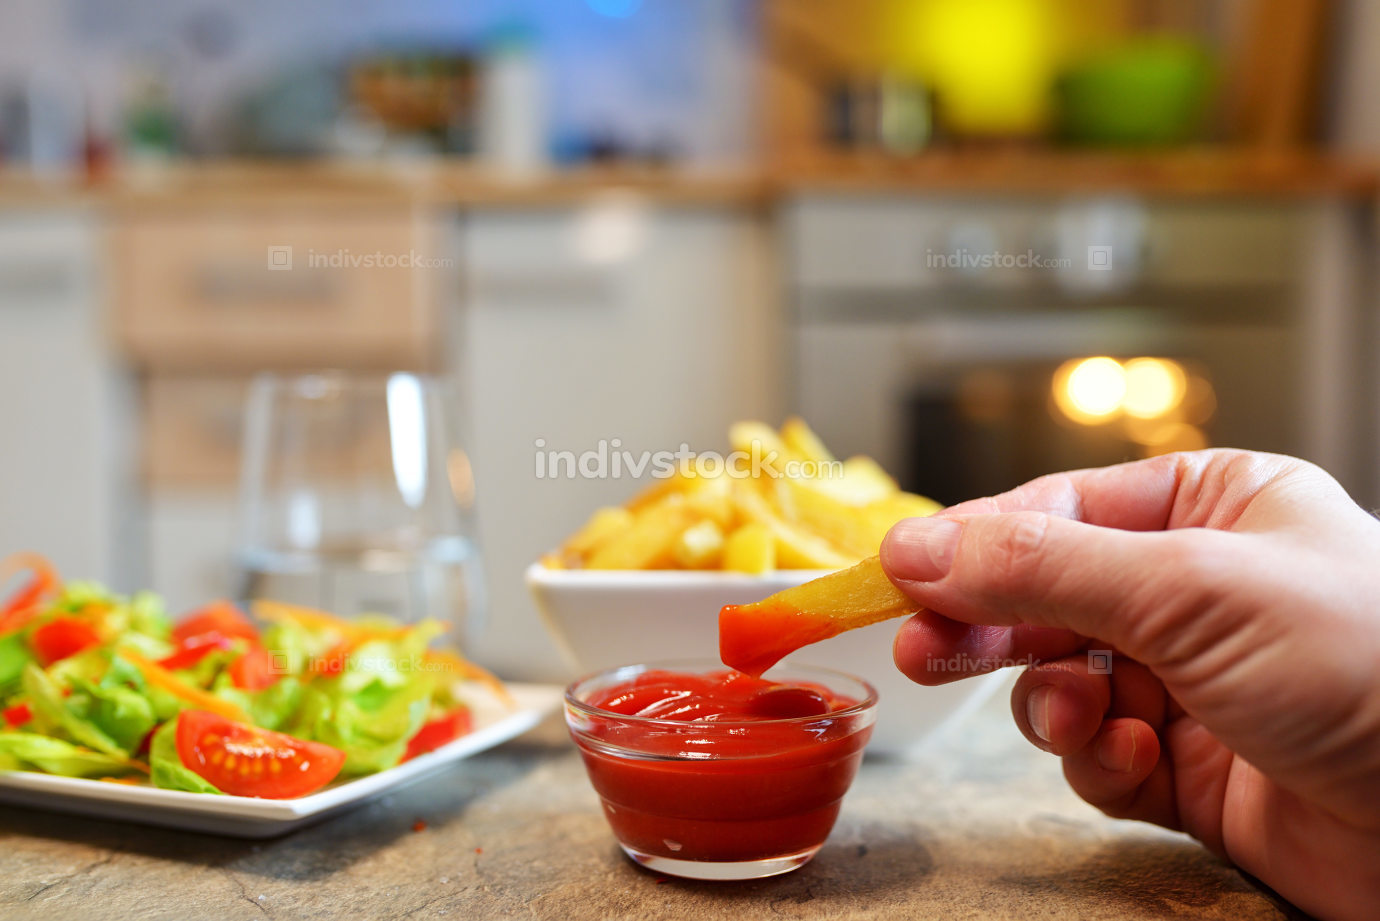 Salad and French fries